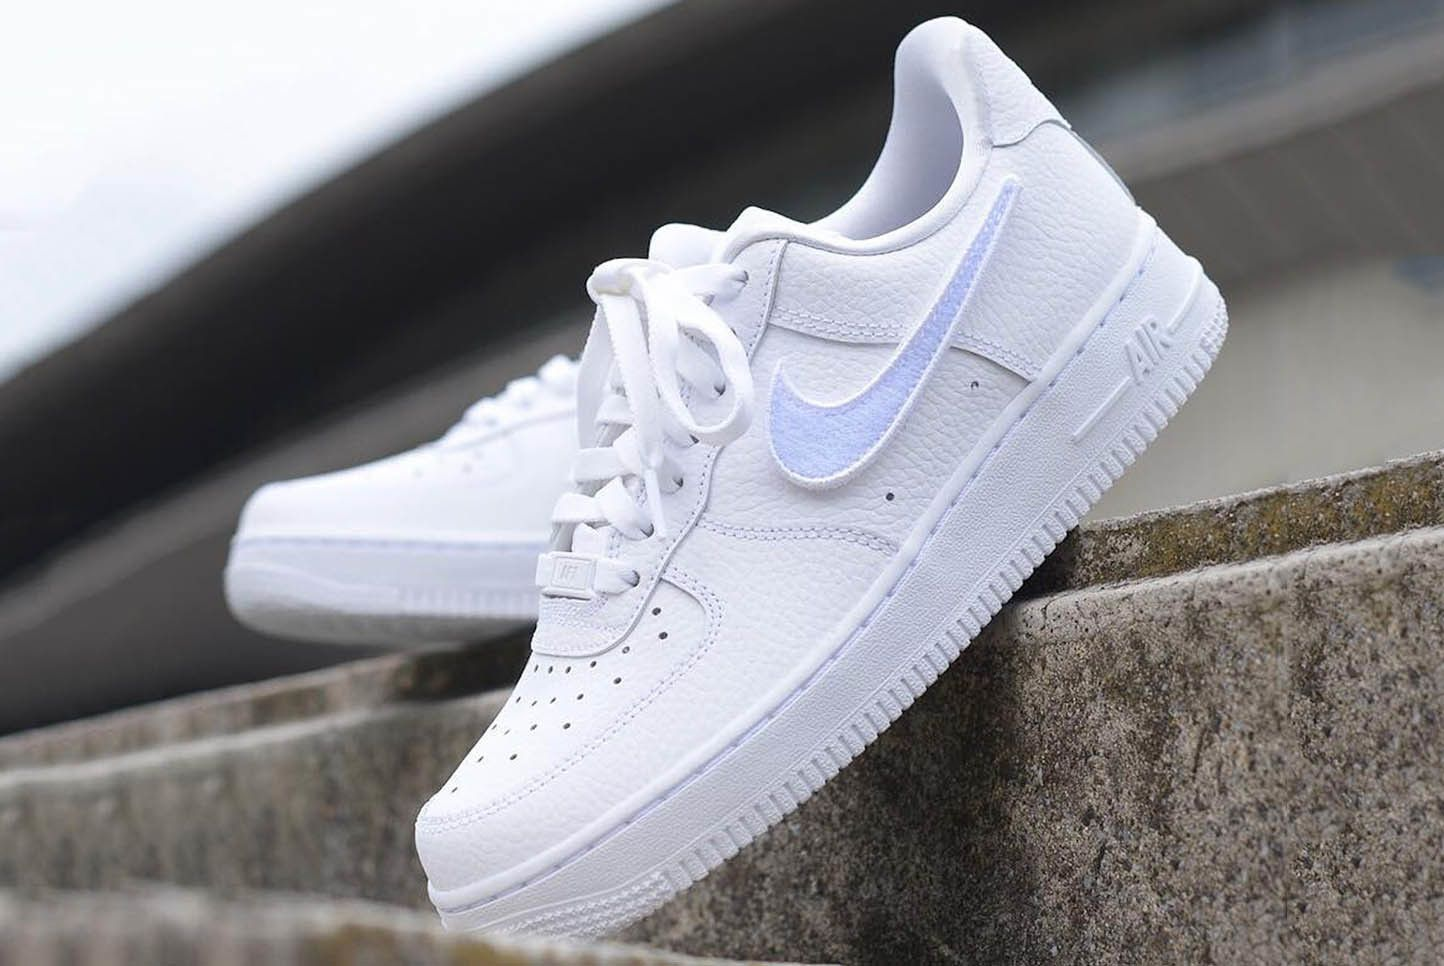 Nike Air Force 1 100 Aq3621 111 2 Sneaker Freaker